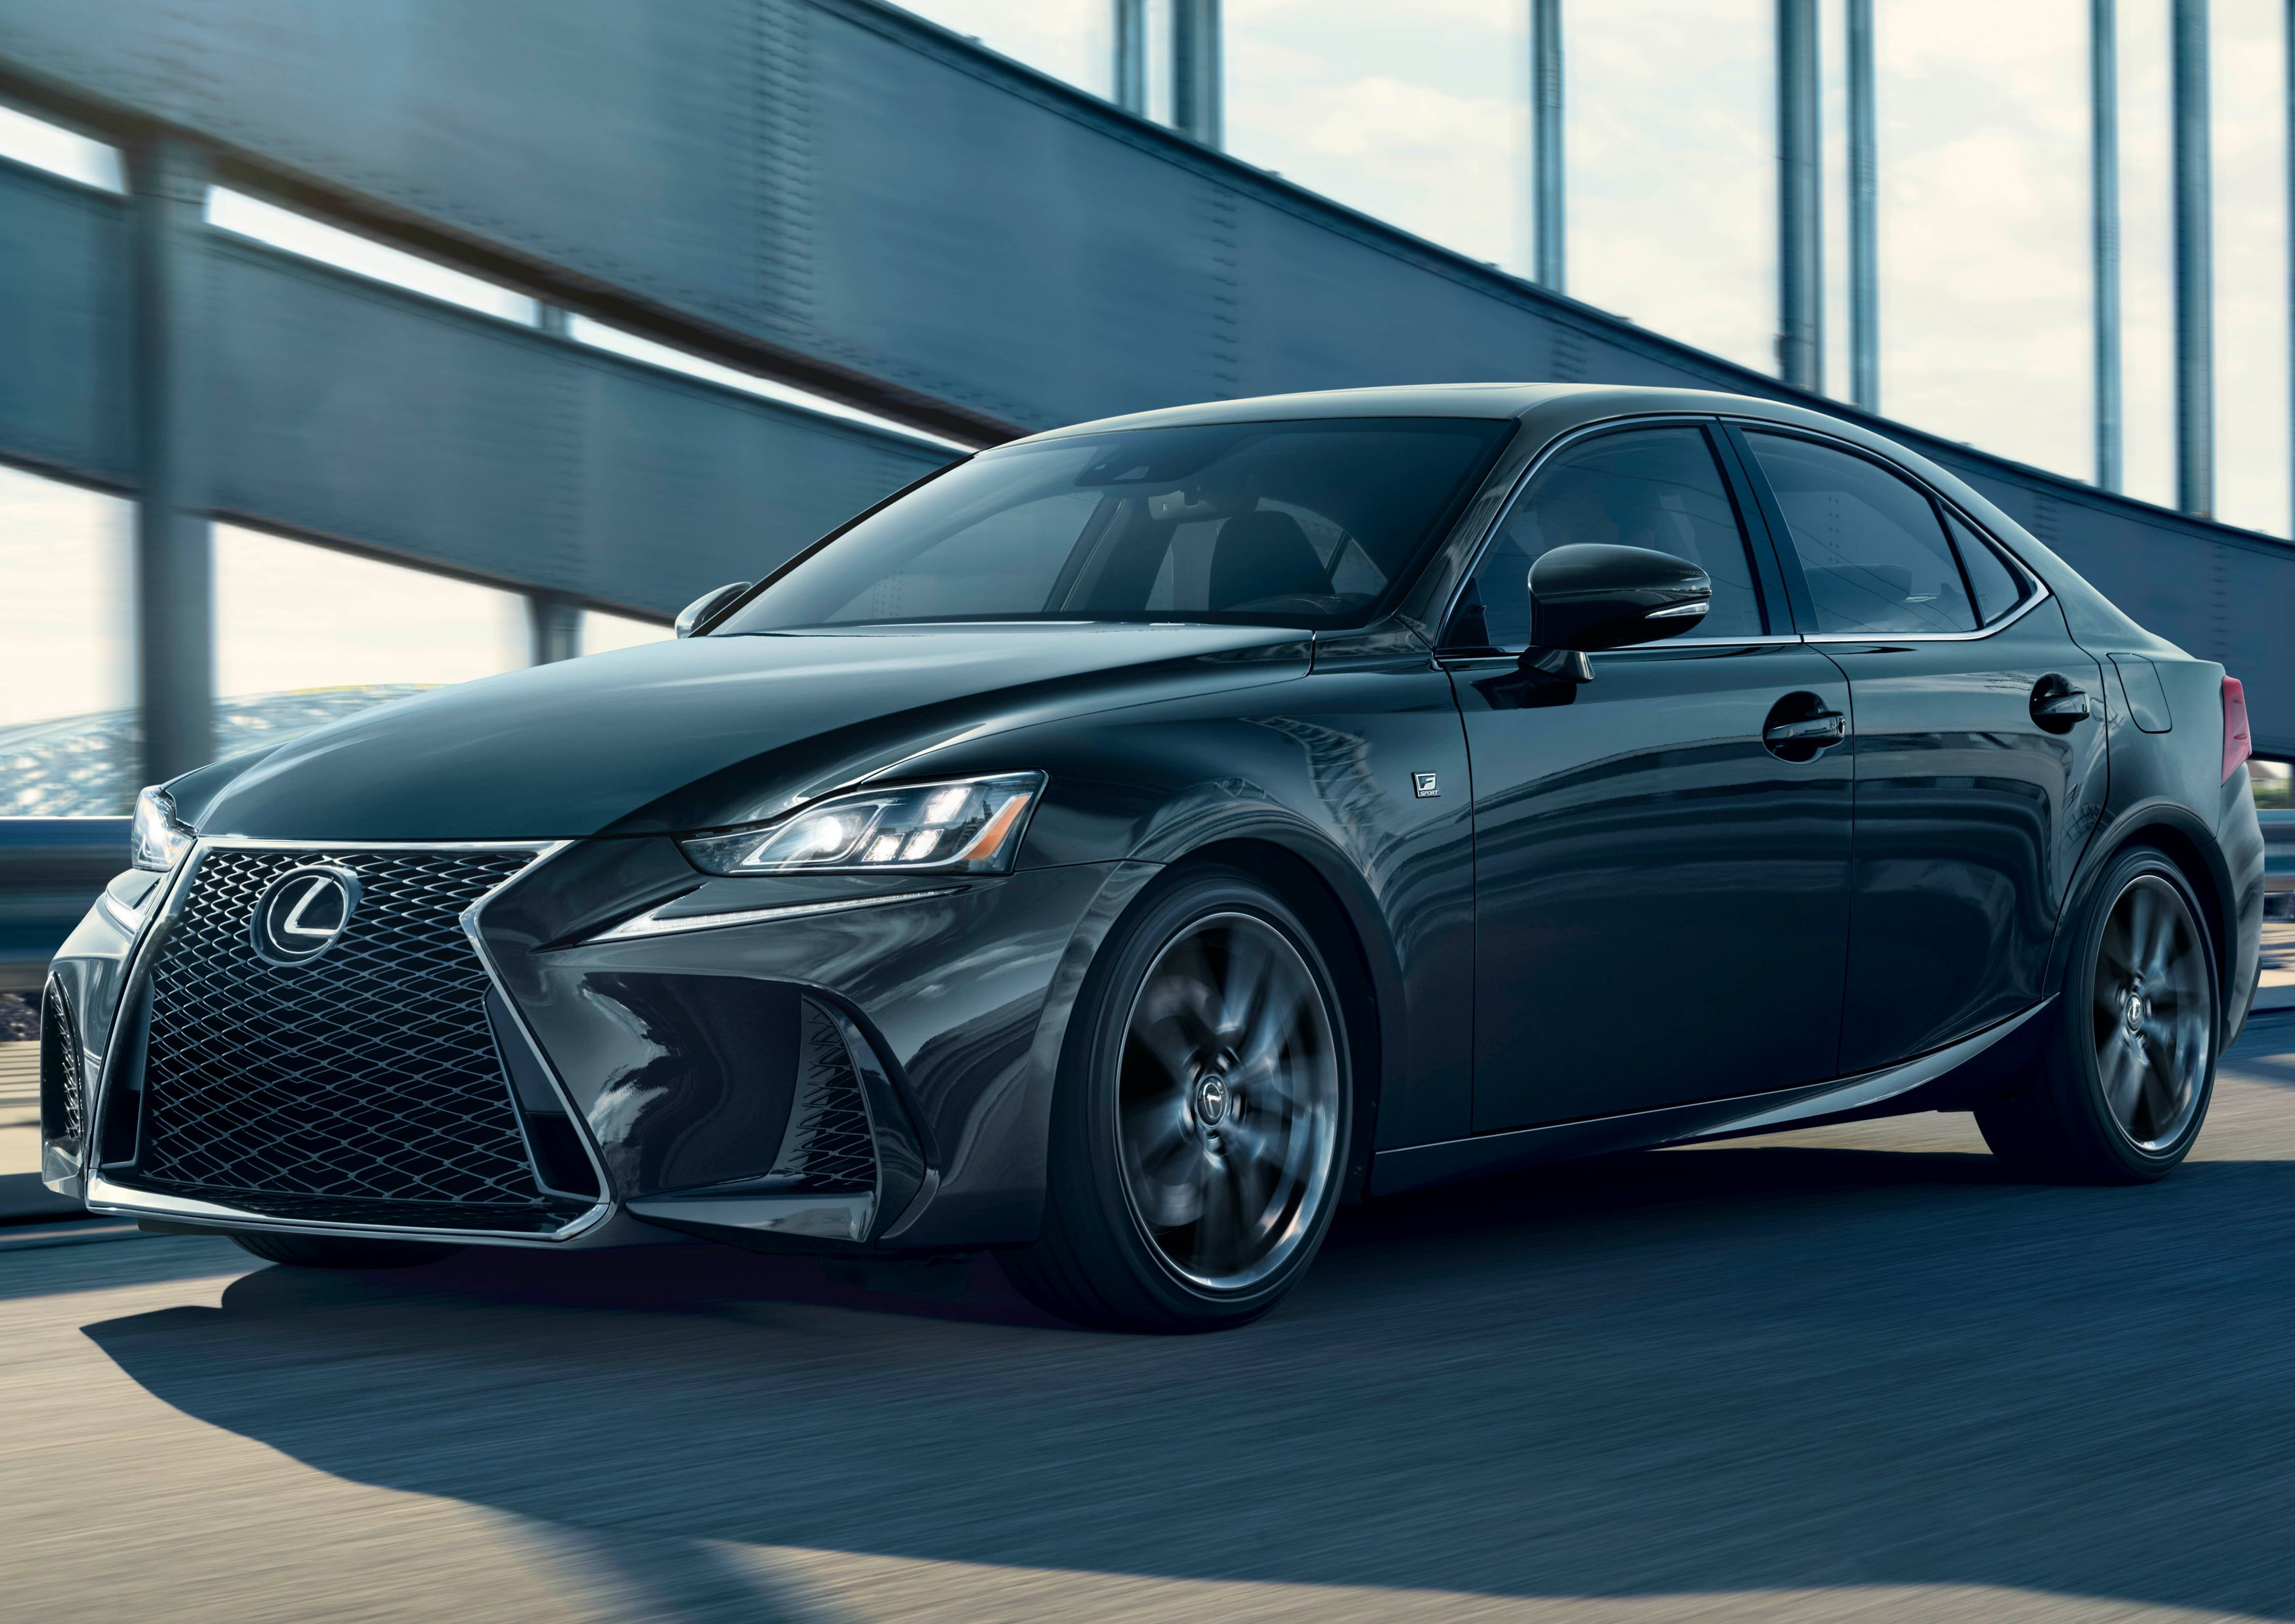 The 2019 Lexus Is 300 F Sport Black Line Edition 5 Photos Modelpublisher Com Lexus Sedan Lexus Lexus Sport